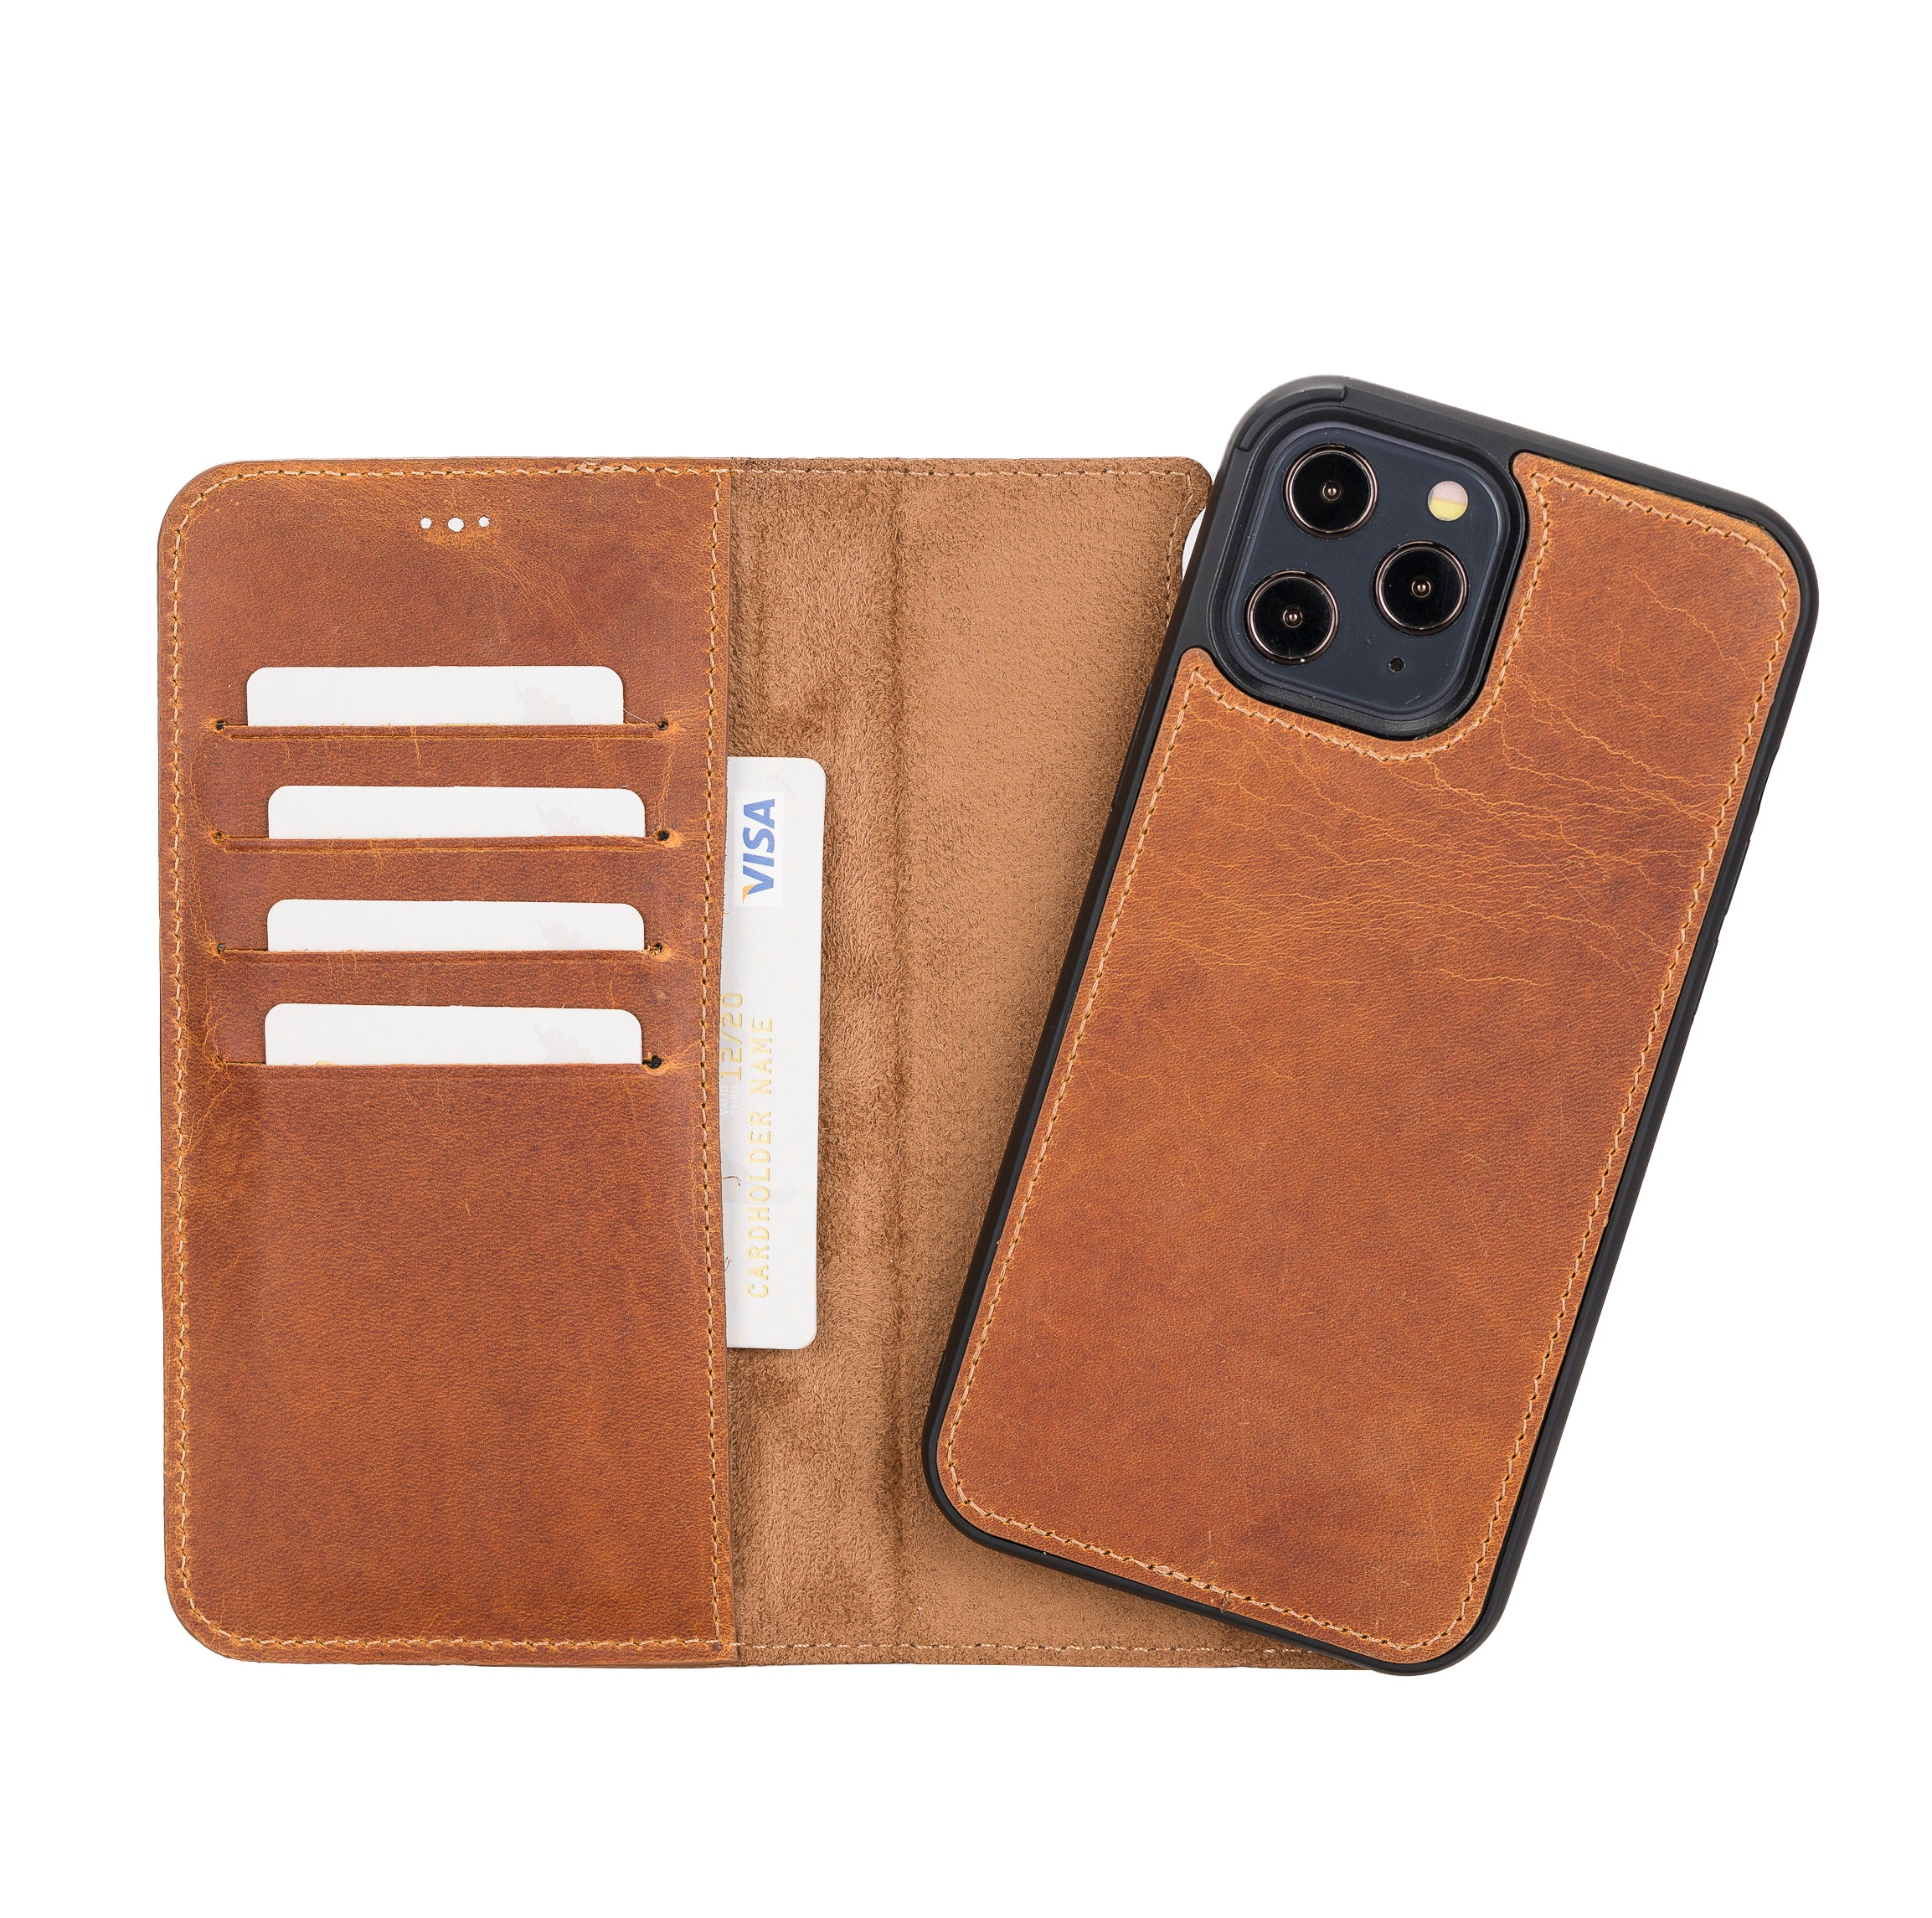 "Magic Magnetic Detachable Leather Wallet Case for iPhone 12 Pro Max (6.7"") - TAN - saracleather"